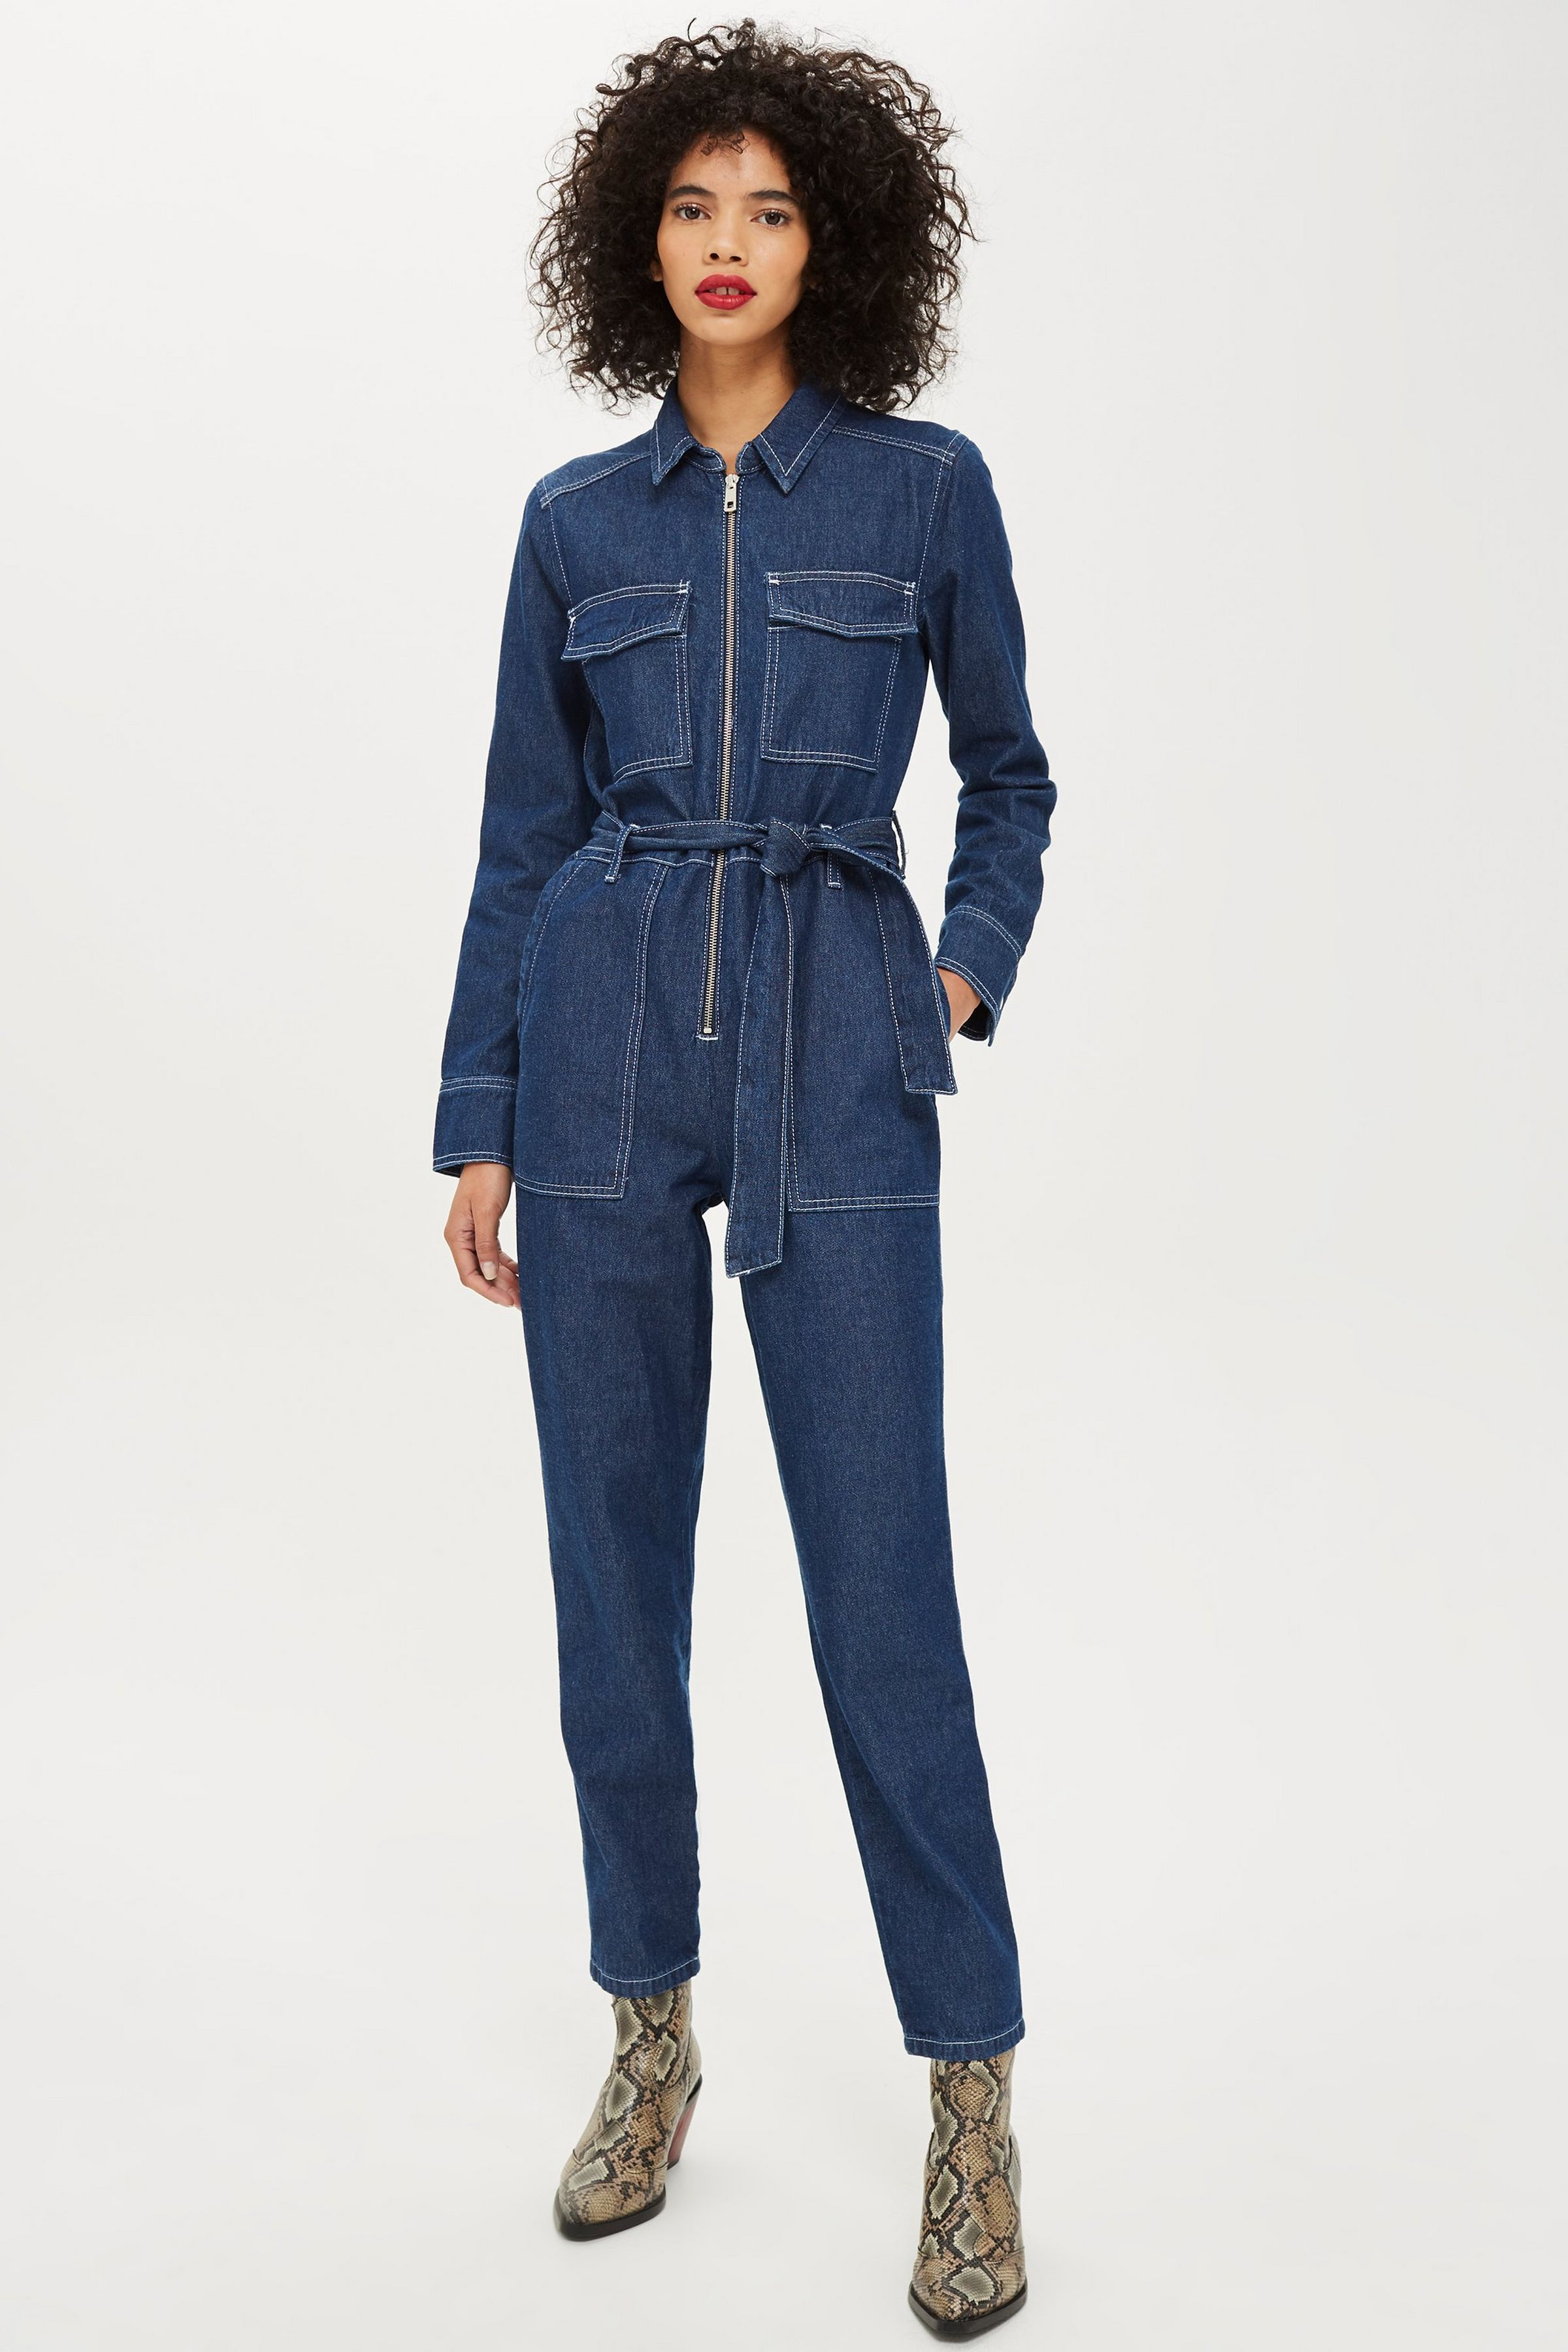 Carousel Image 0   Denim jumpsuit outfit, Rompers womens ...